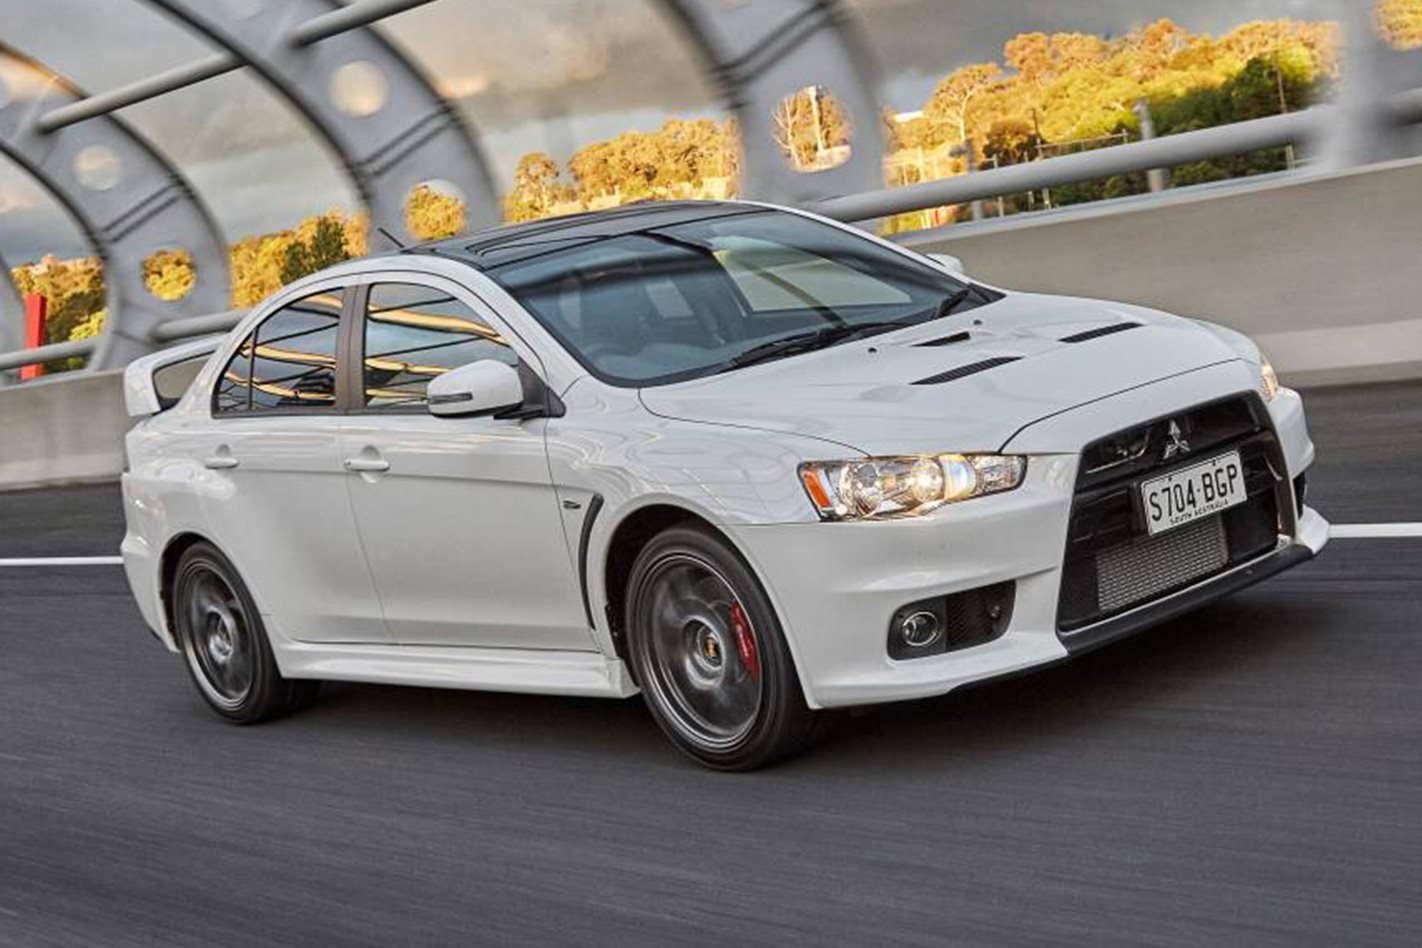 2015-Mitsubishi-Lancer-Evolution-Final-Edition.jpg